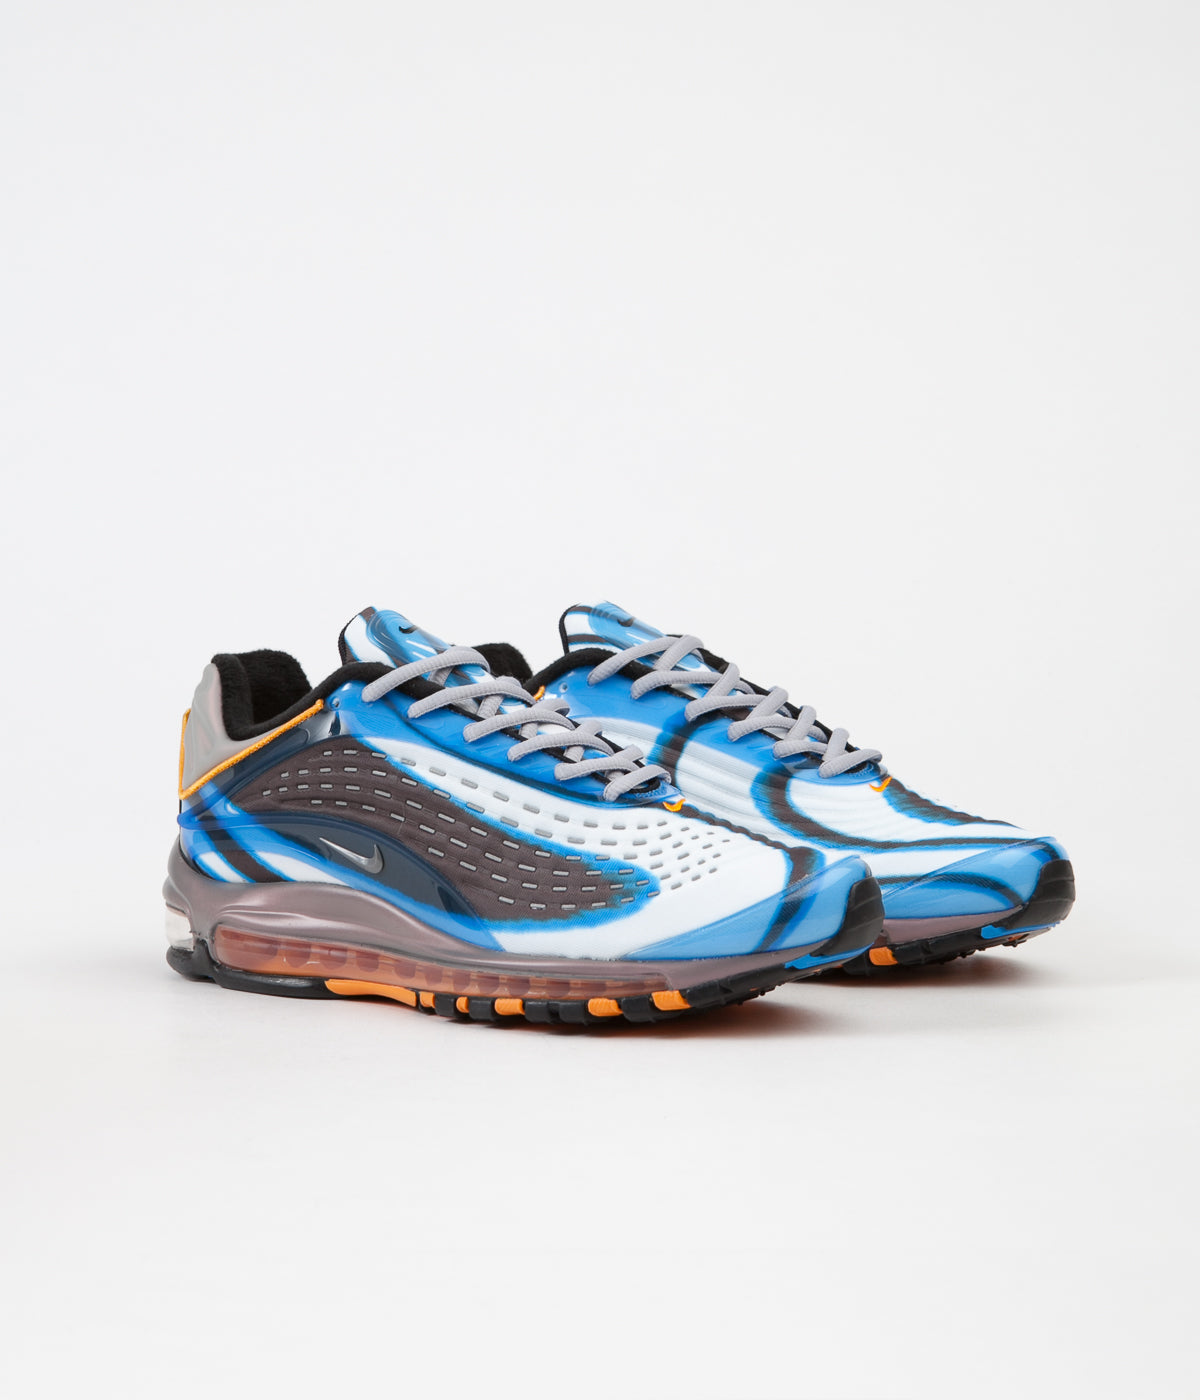 42962a6b36d3 ... Nike Air Max Deluxe Shoes - Photo Blue   Wolf Grey - Orange Peel - Black  ...